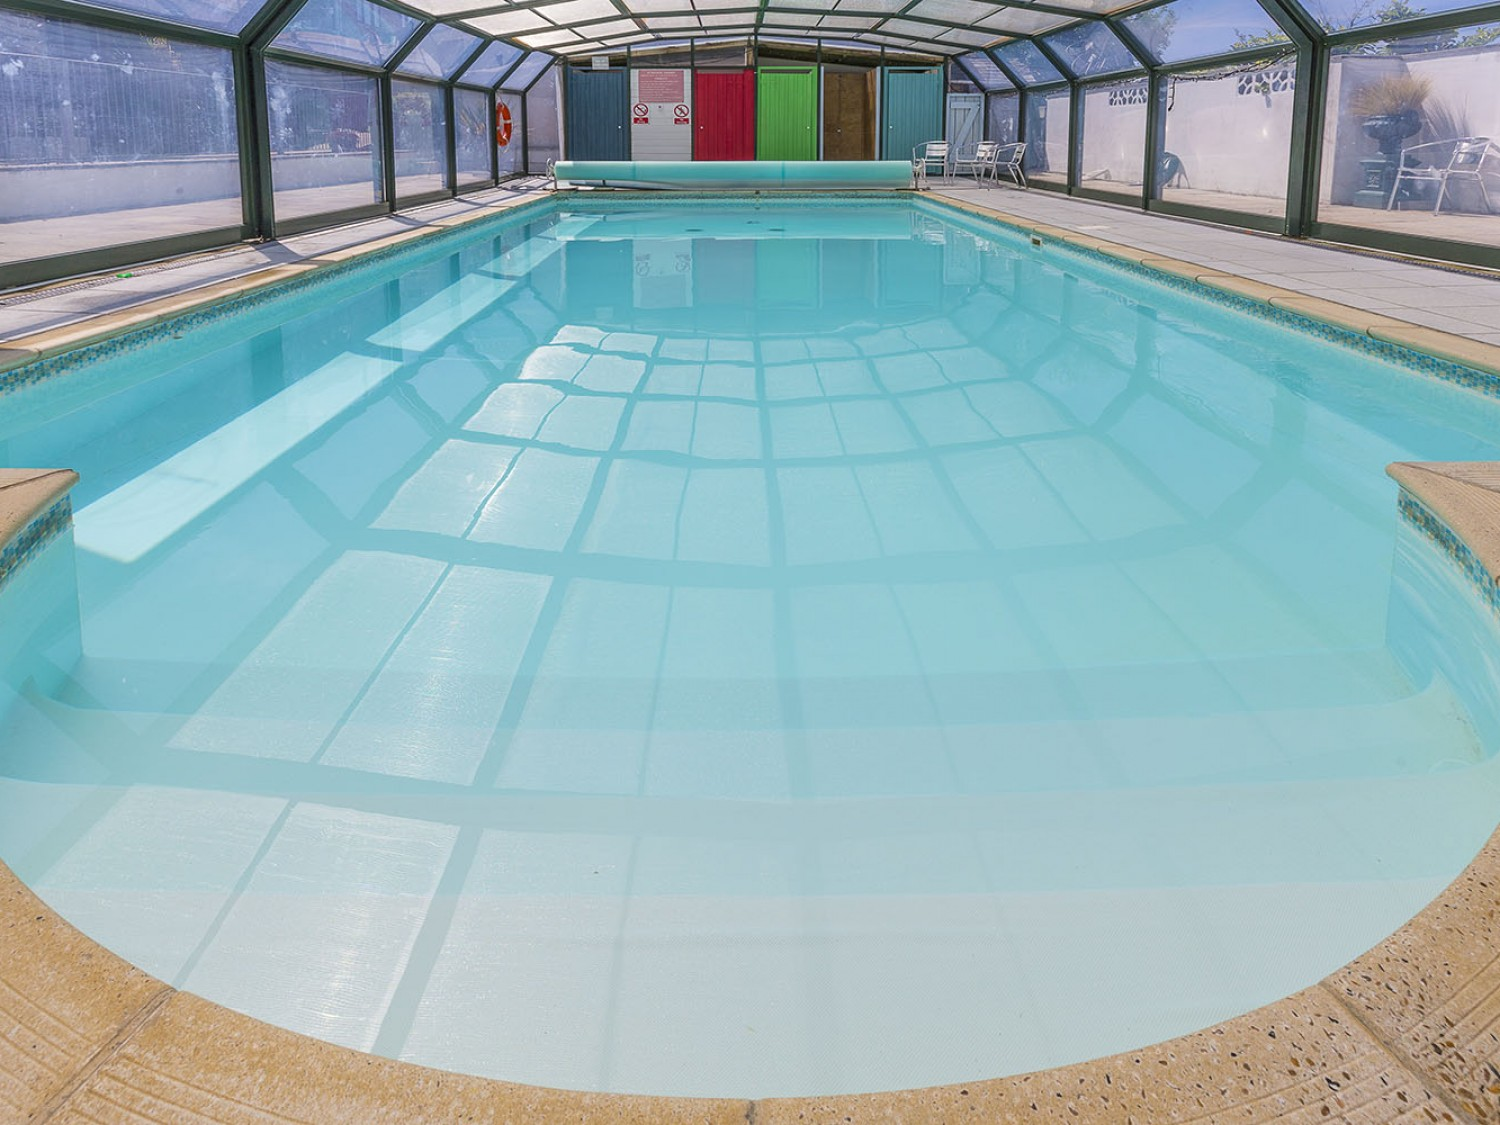 Use of shared Heated Indoor Swimming Pool